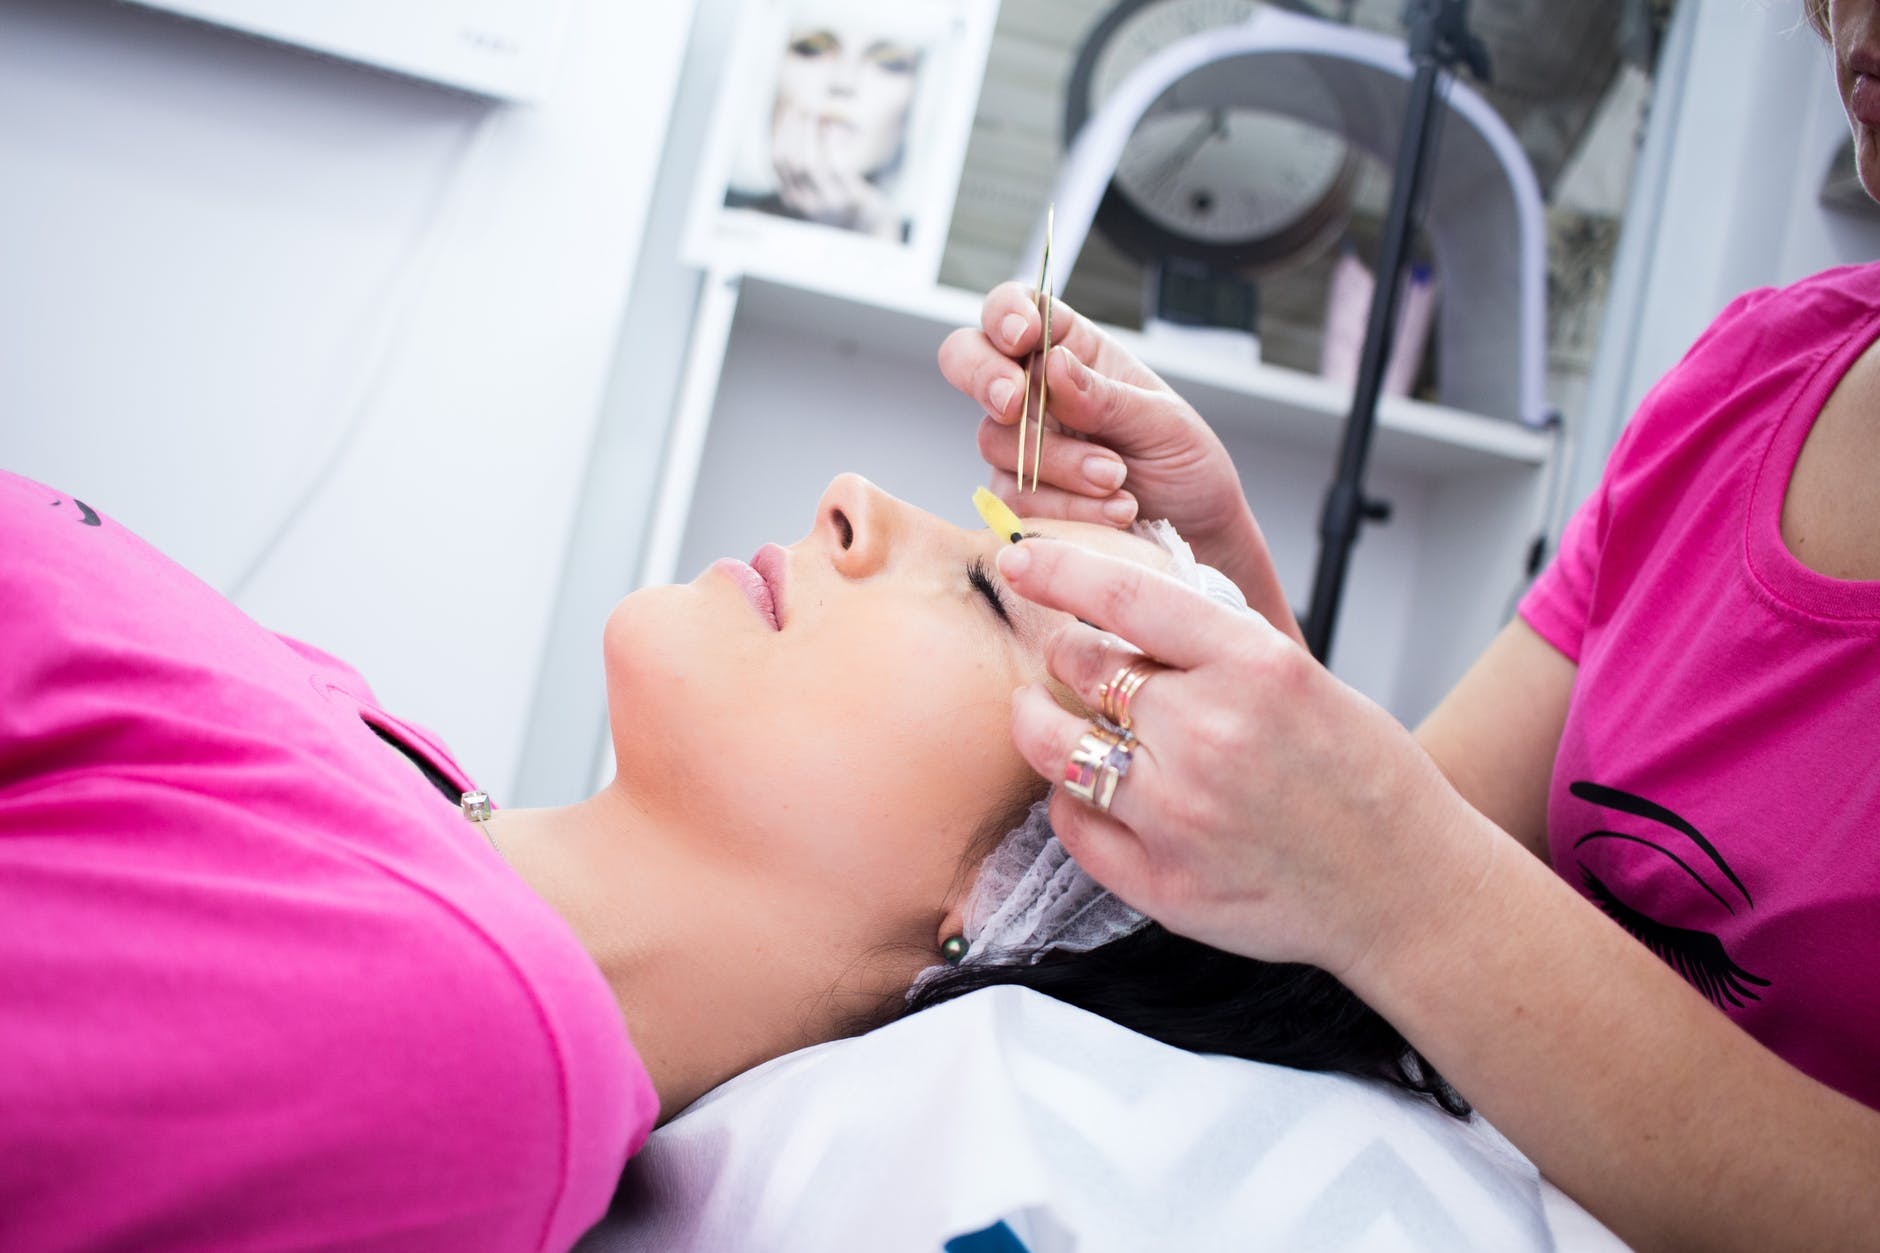 Beauty Therapy Eye Treatments to Pamper Yourself With article image by Bliss Skincare